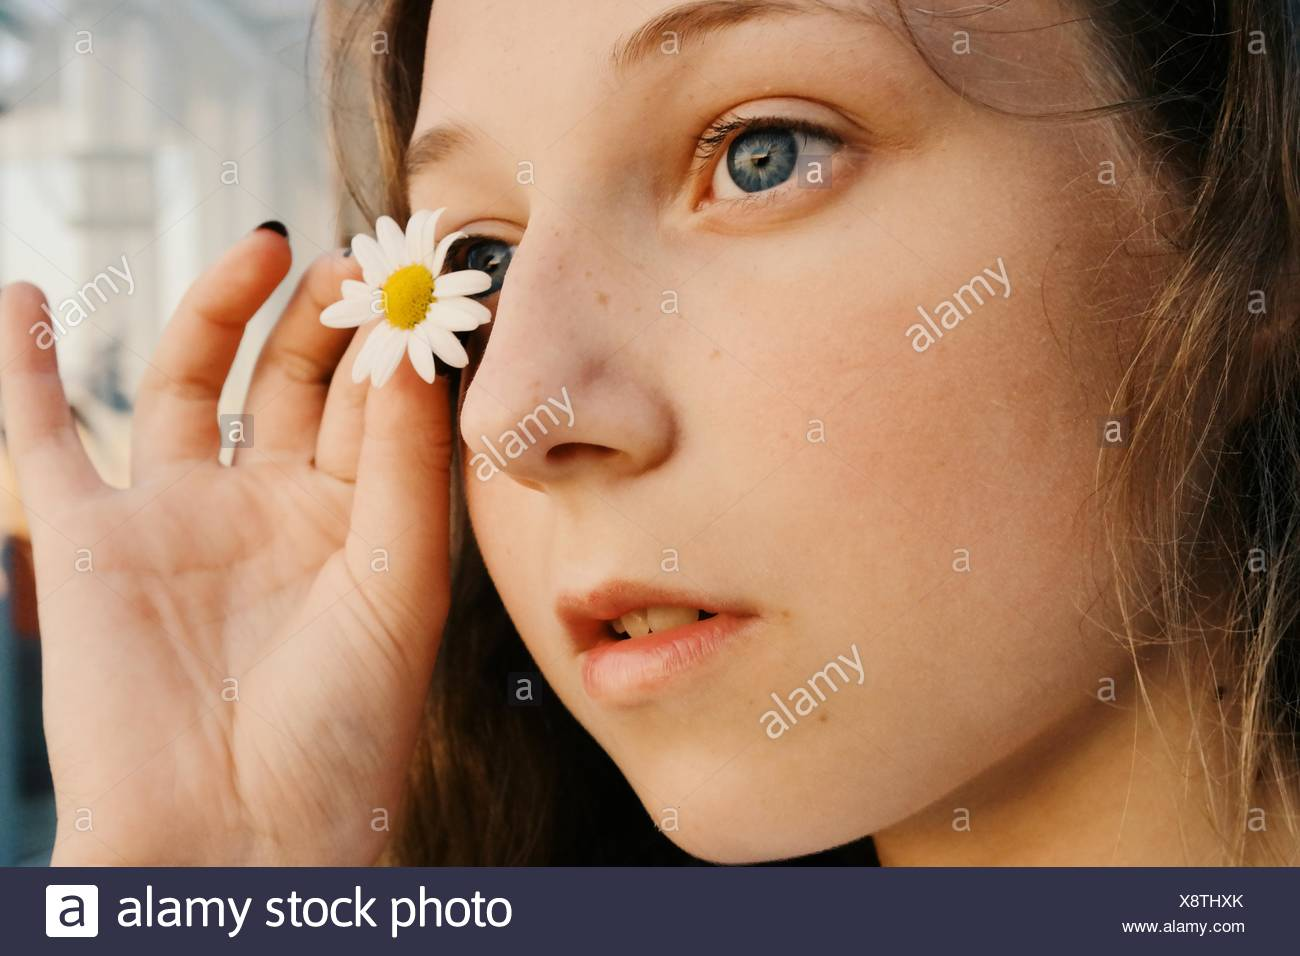 Close-Up Of A Girl Holding A Daisy Flower Near Her Eye - Stock Image